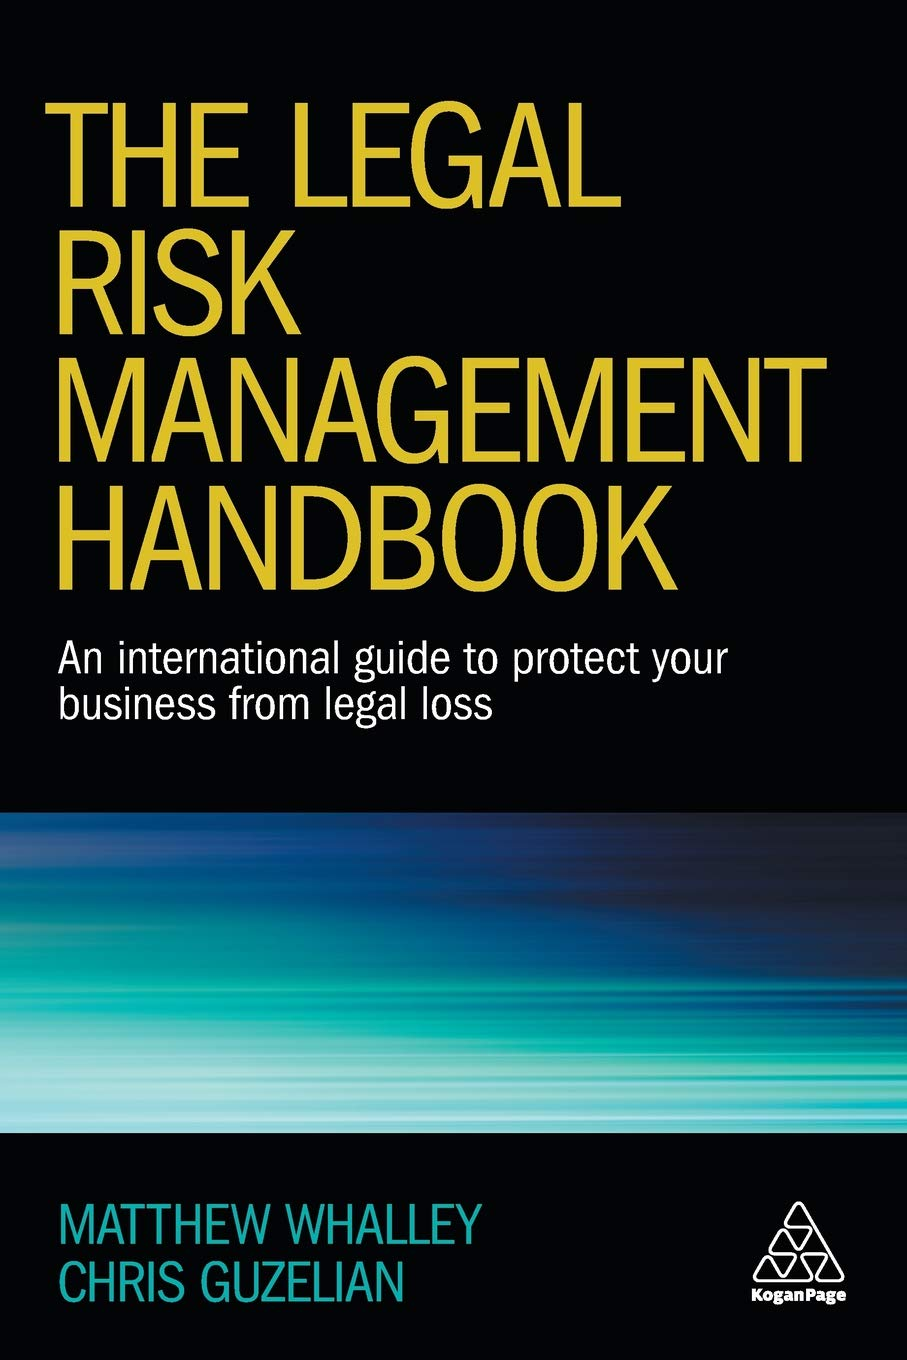 Image OfThe Legal Risk Management Handbook: An International Guide To Protect Your Business From Legal Loss